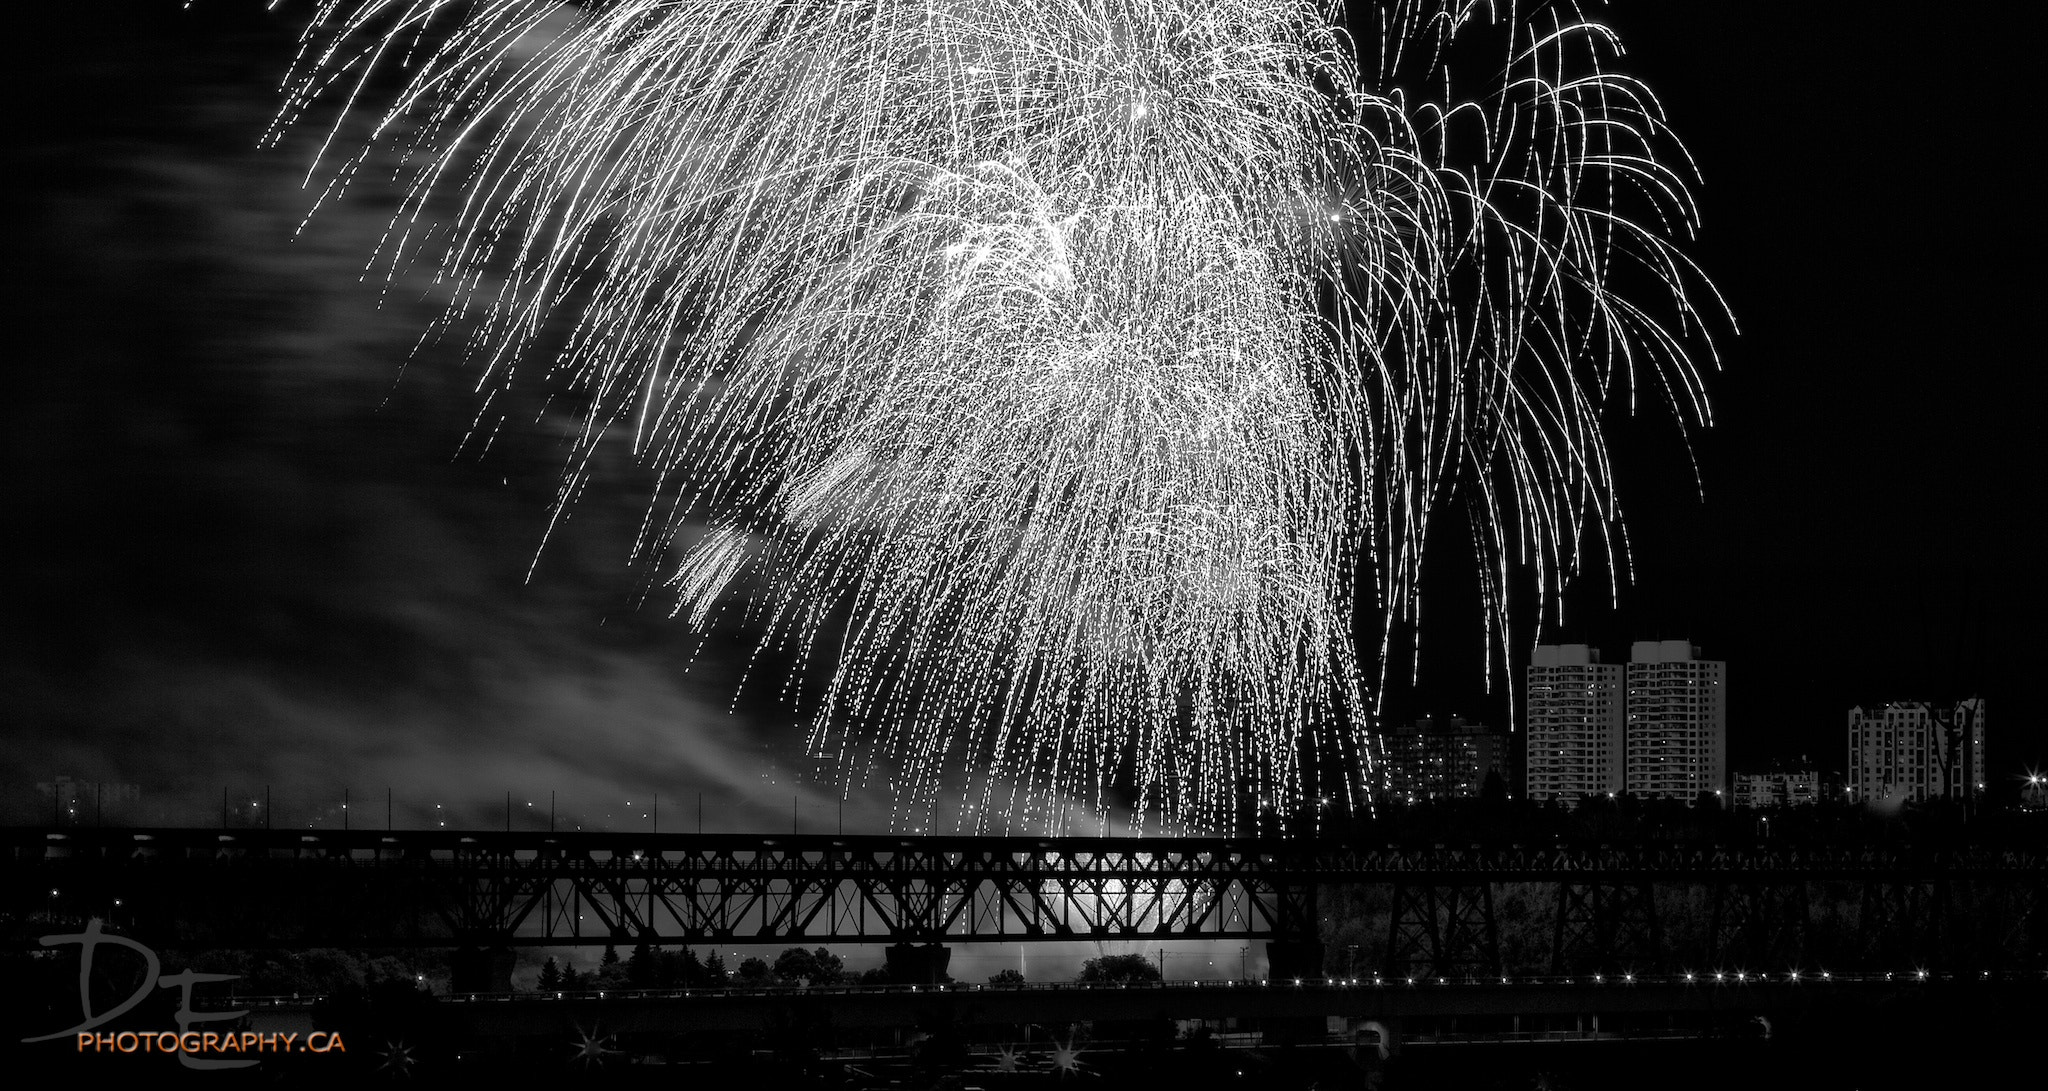 Photograph Fireworks in B&W by Darcy Evans on 500px